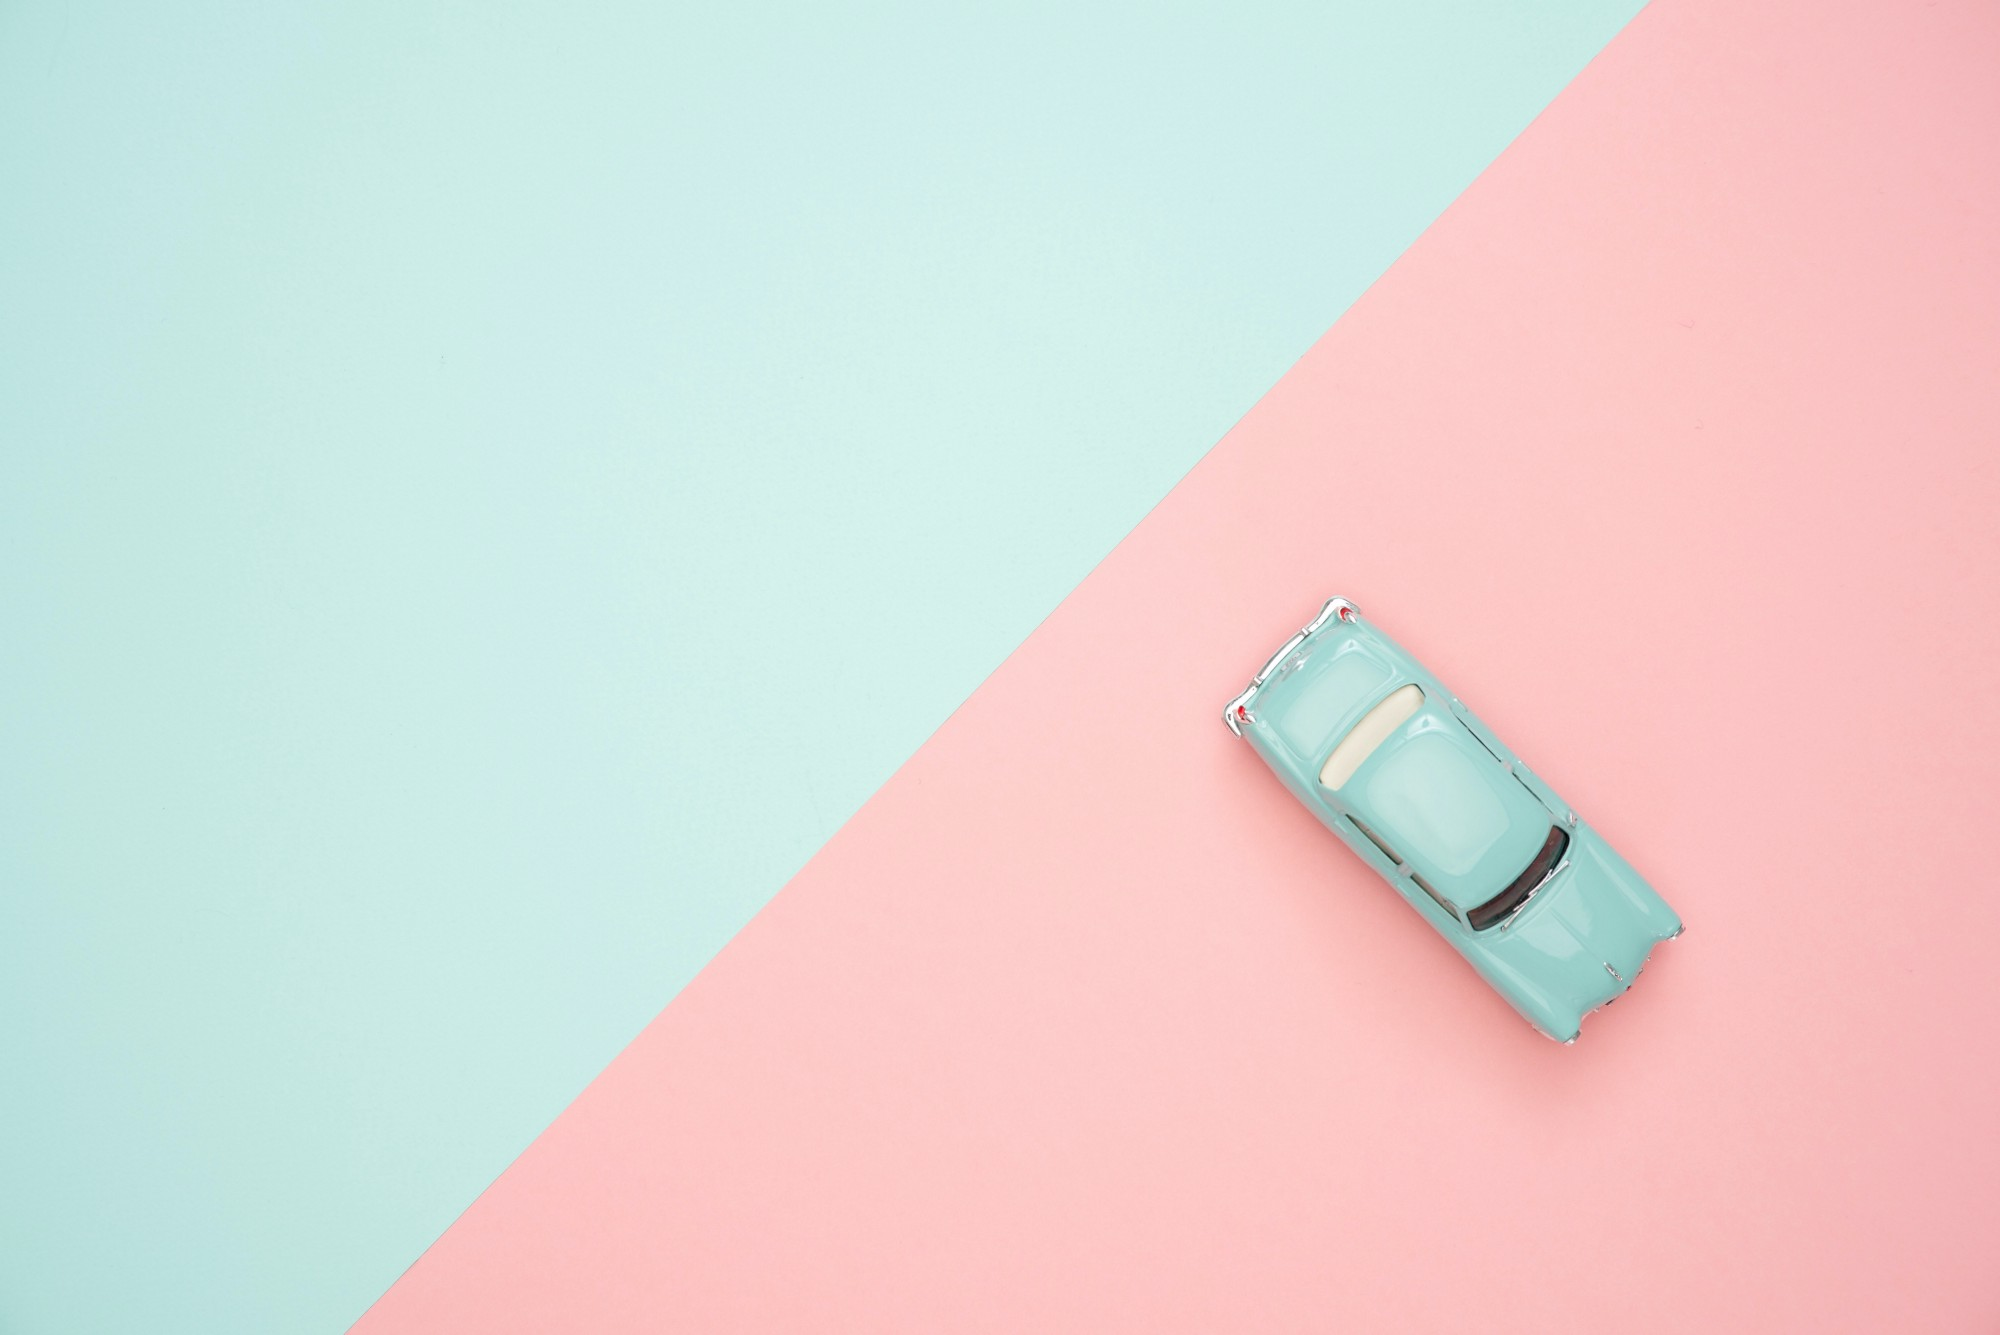 Divide between blue and pink sides of a photo, with a blue toy car on the pink side